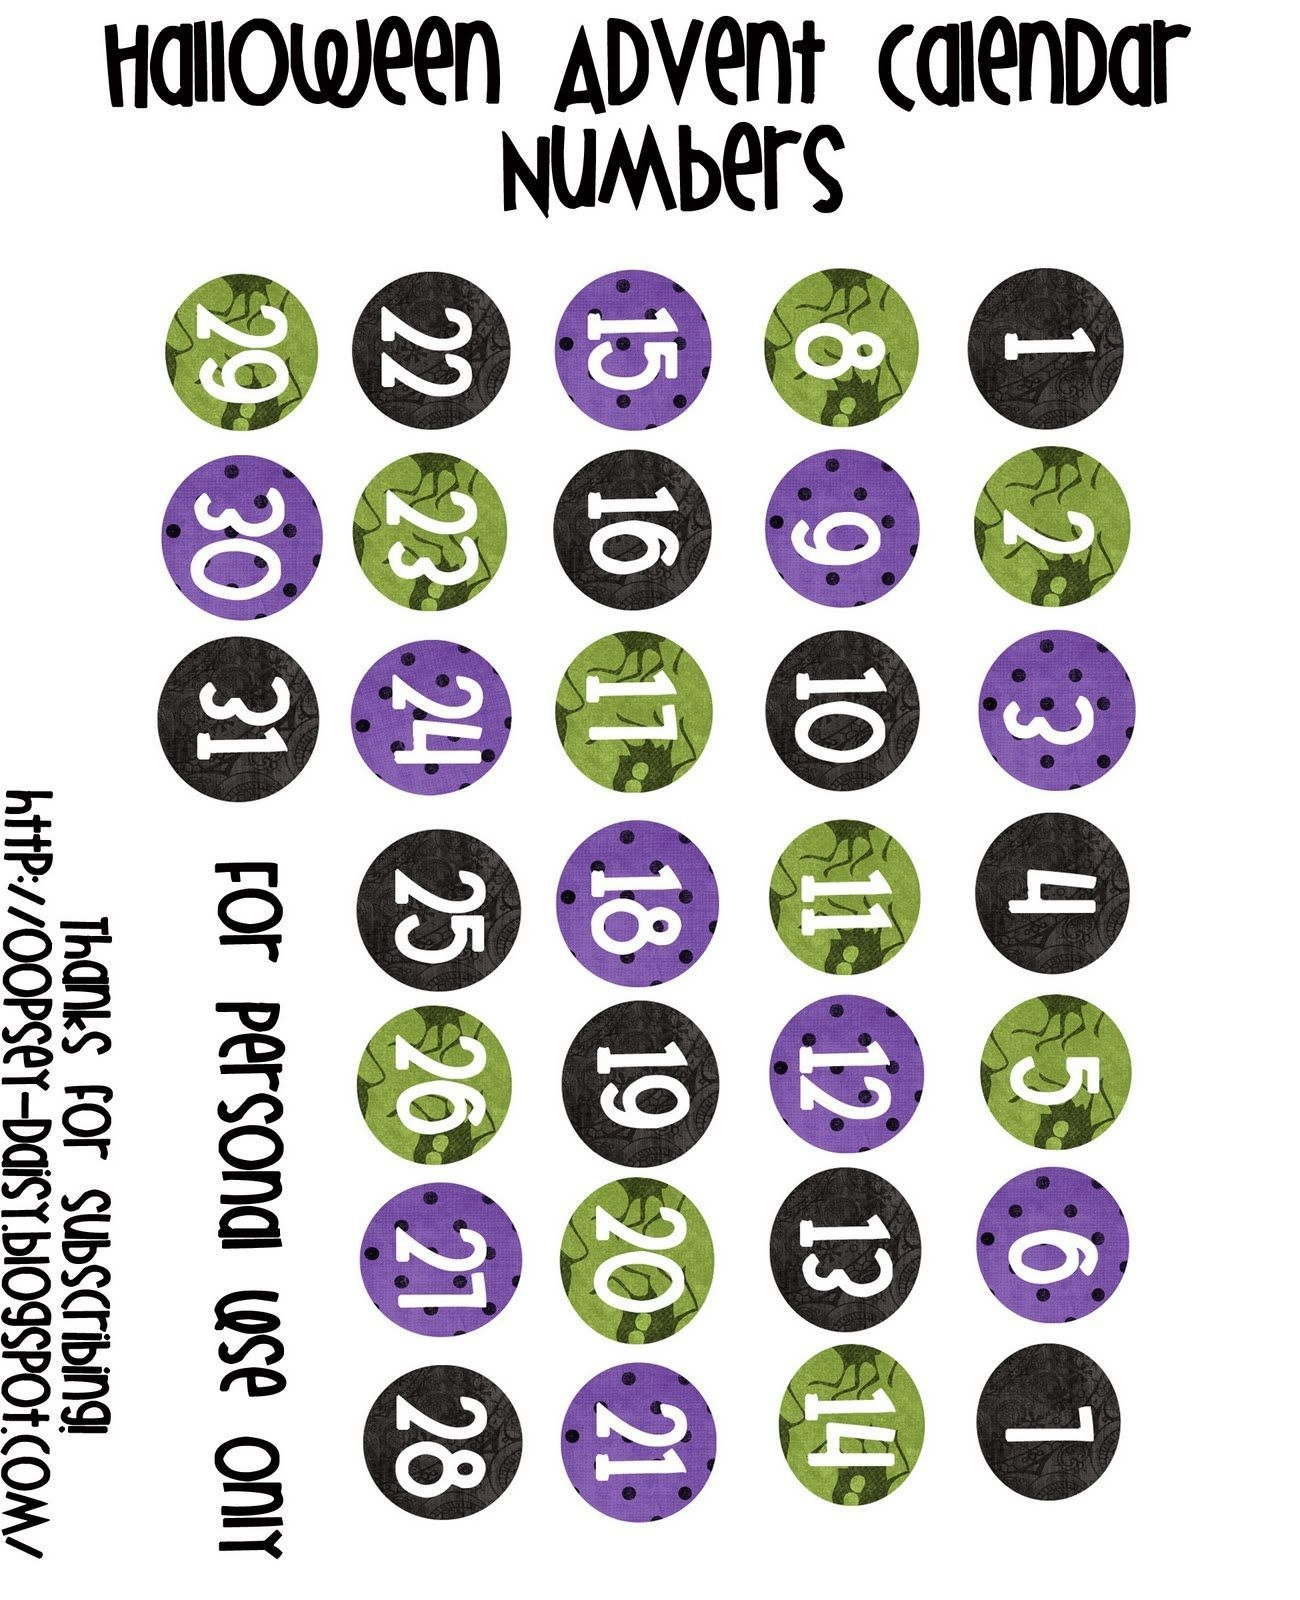 Halloween Advent Numbers (Turn Into Magnets) Printable